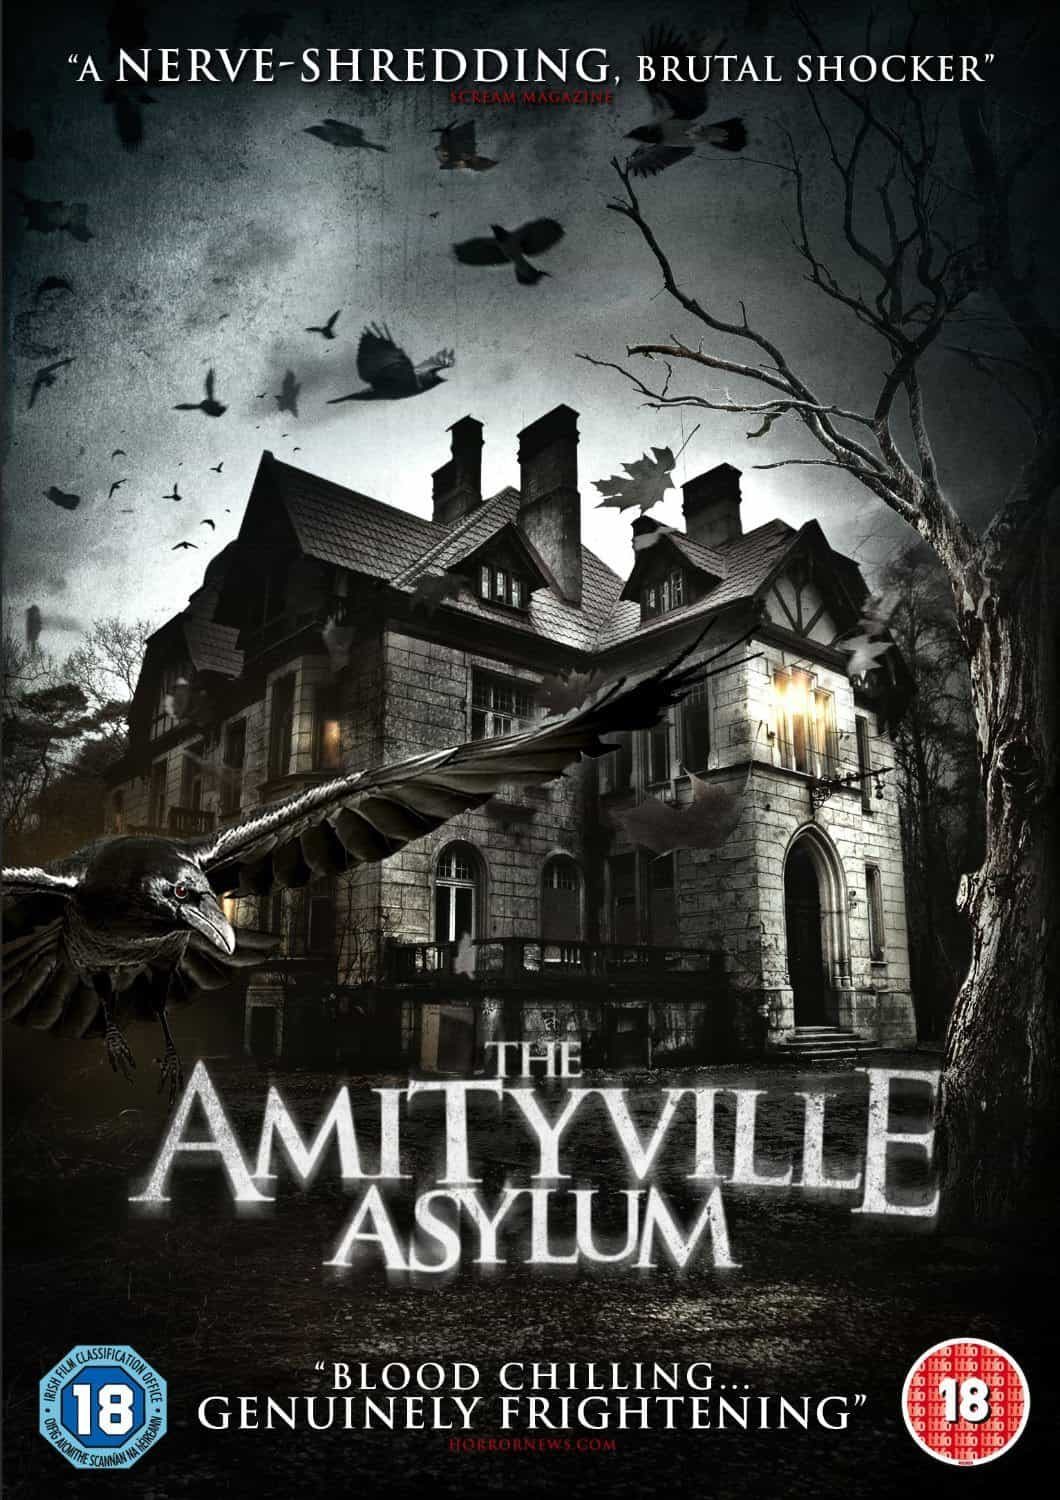 Horror Movie Review: The Amityville Asylum (2013)